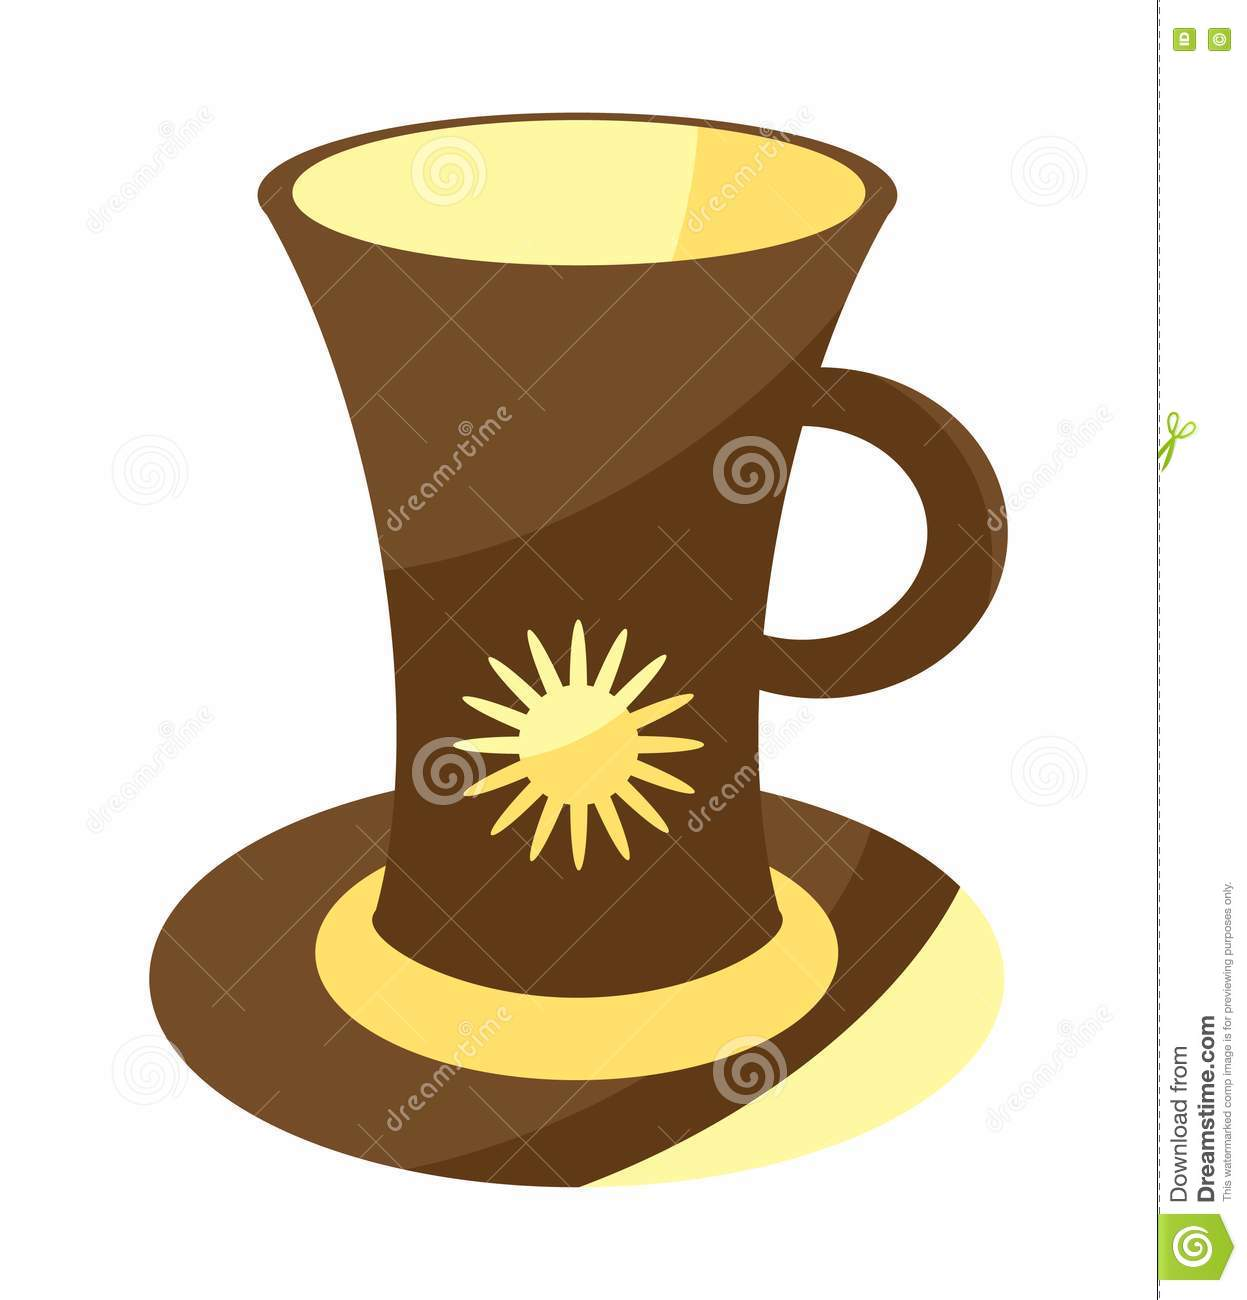 Cute Coffee Cup Royalty Free Stock Photo Image 14244395